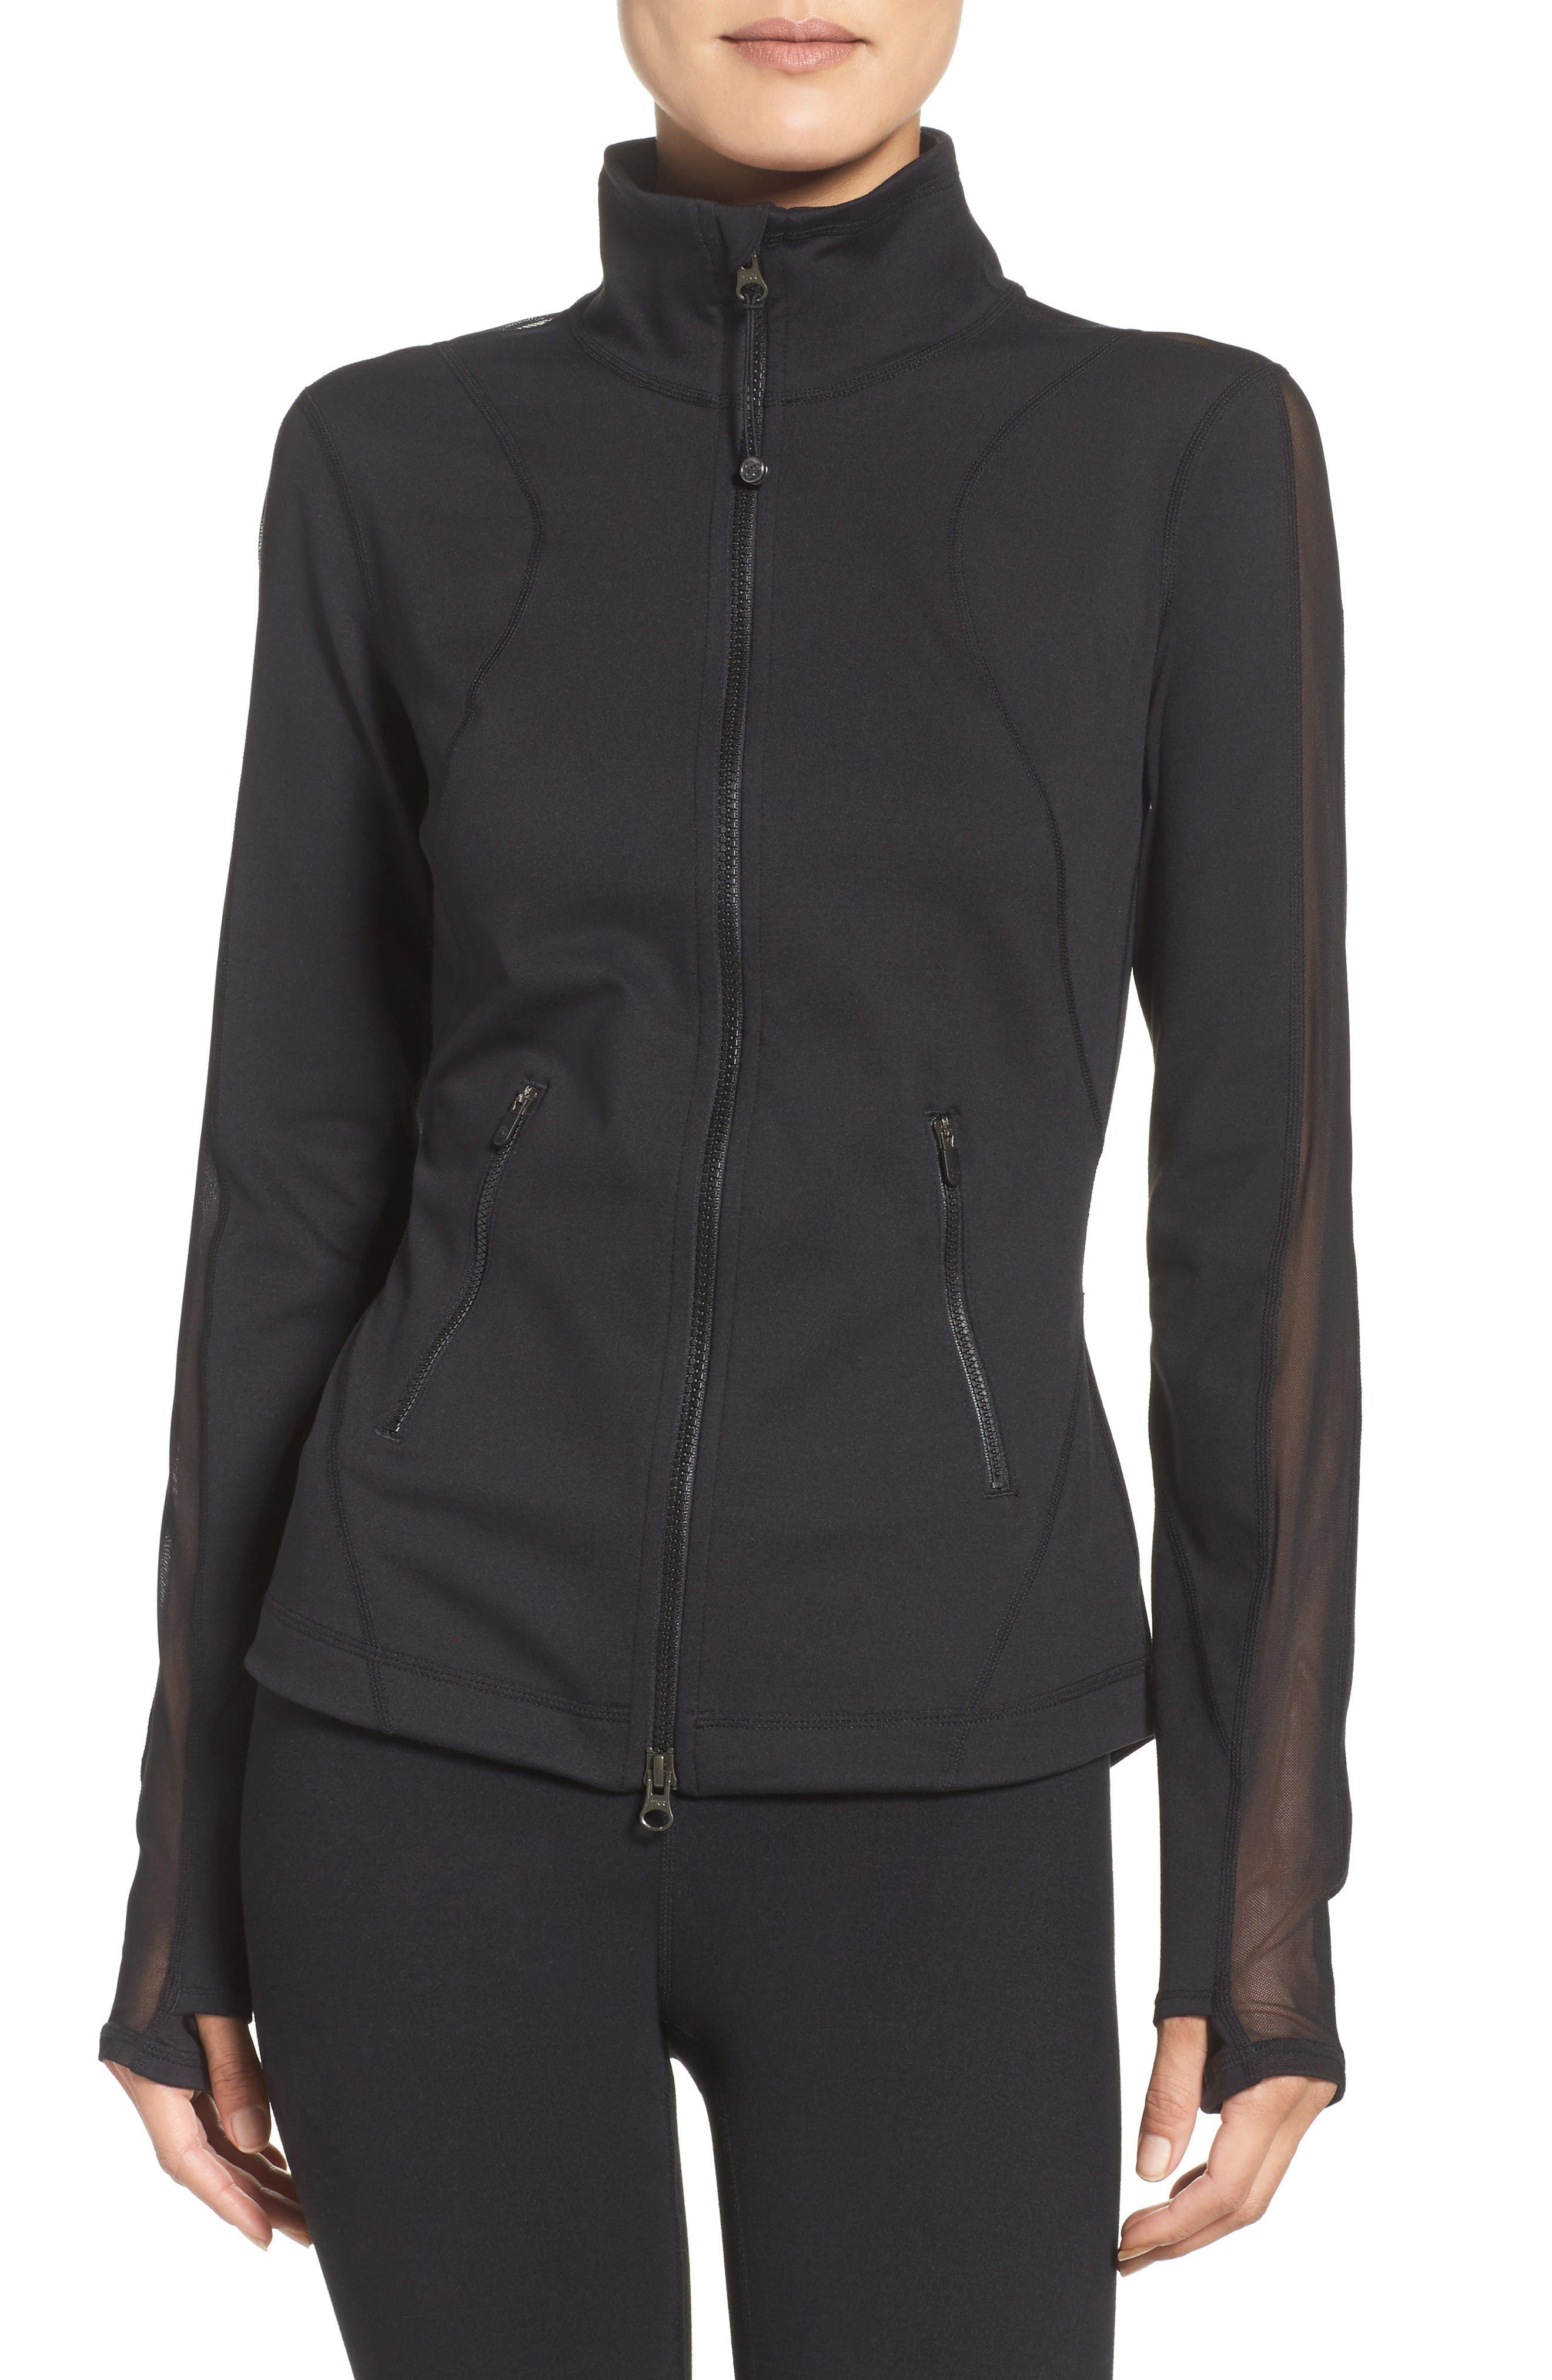 Main Image - Zella Stardust Training Jacket